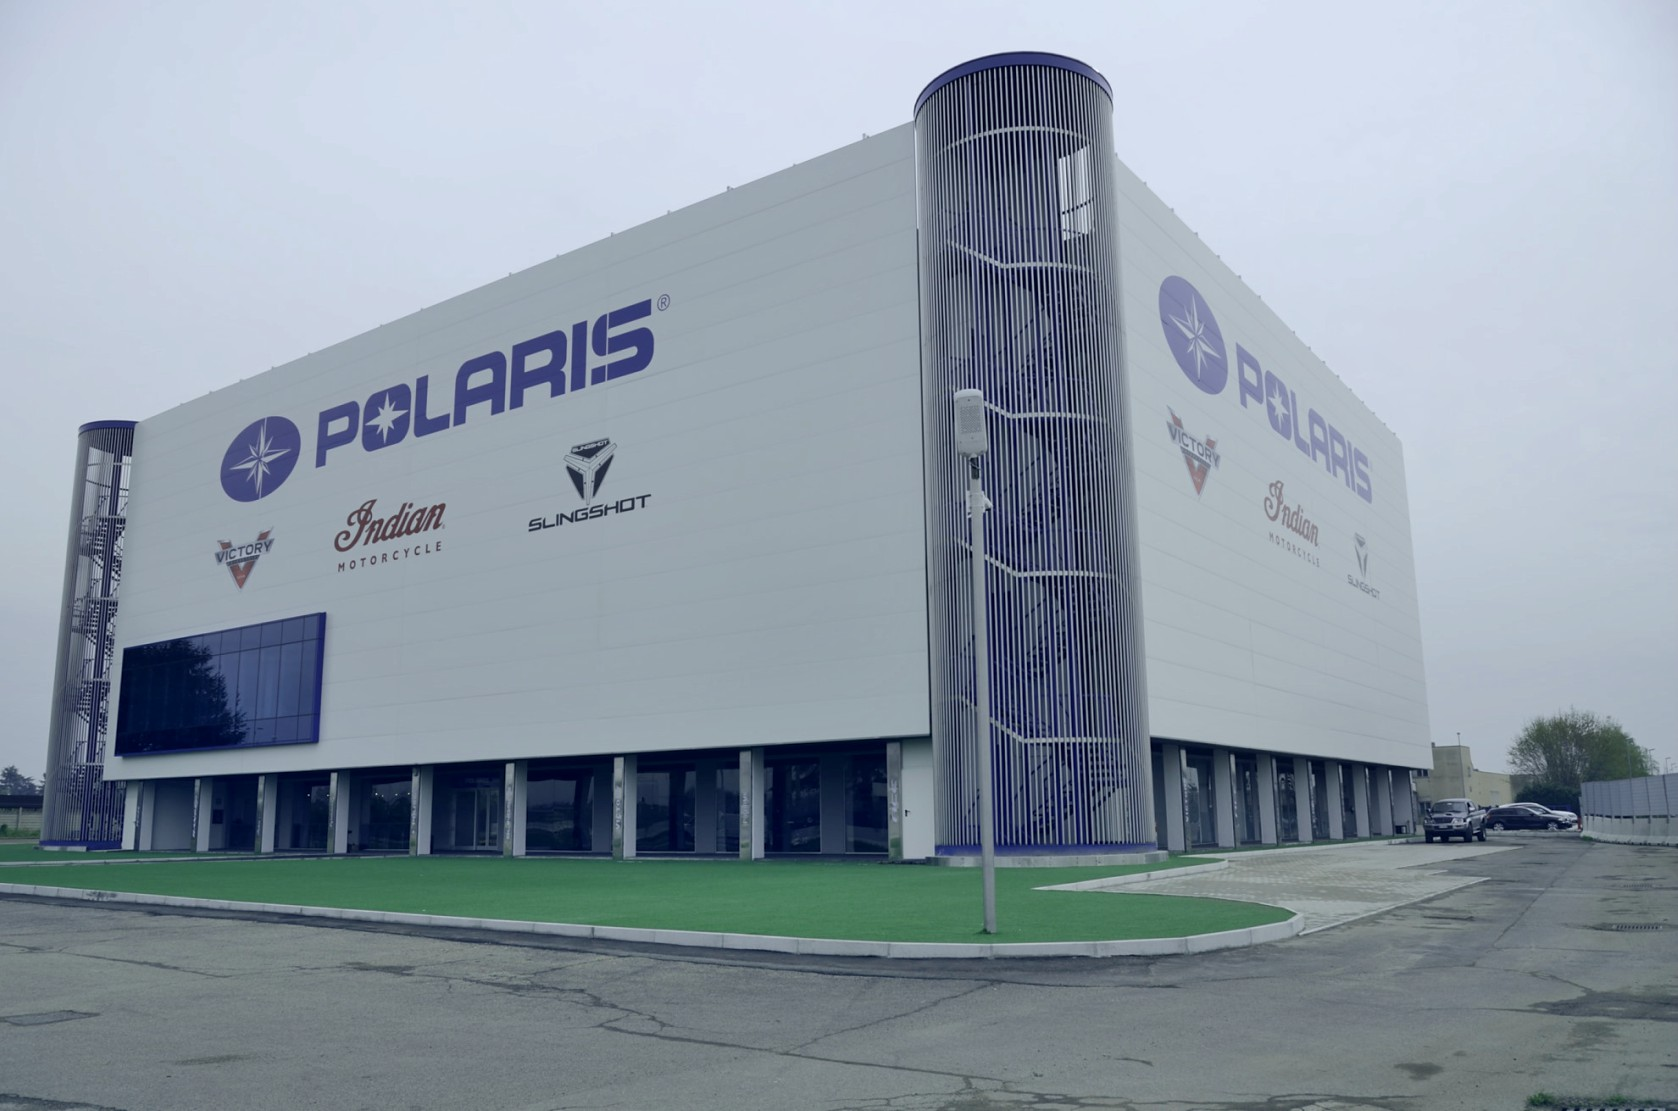 Polaris ilPartycolare